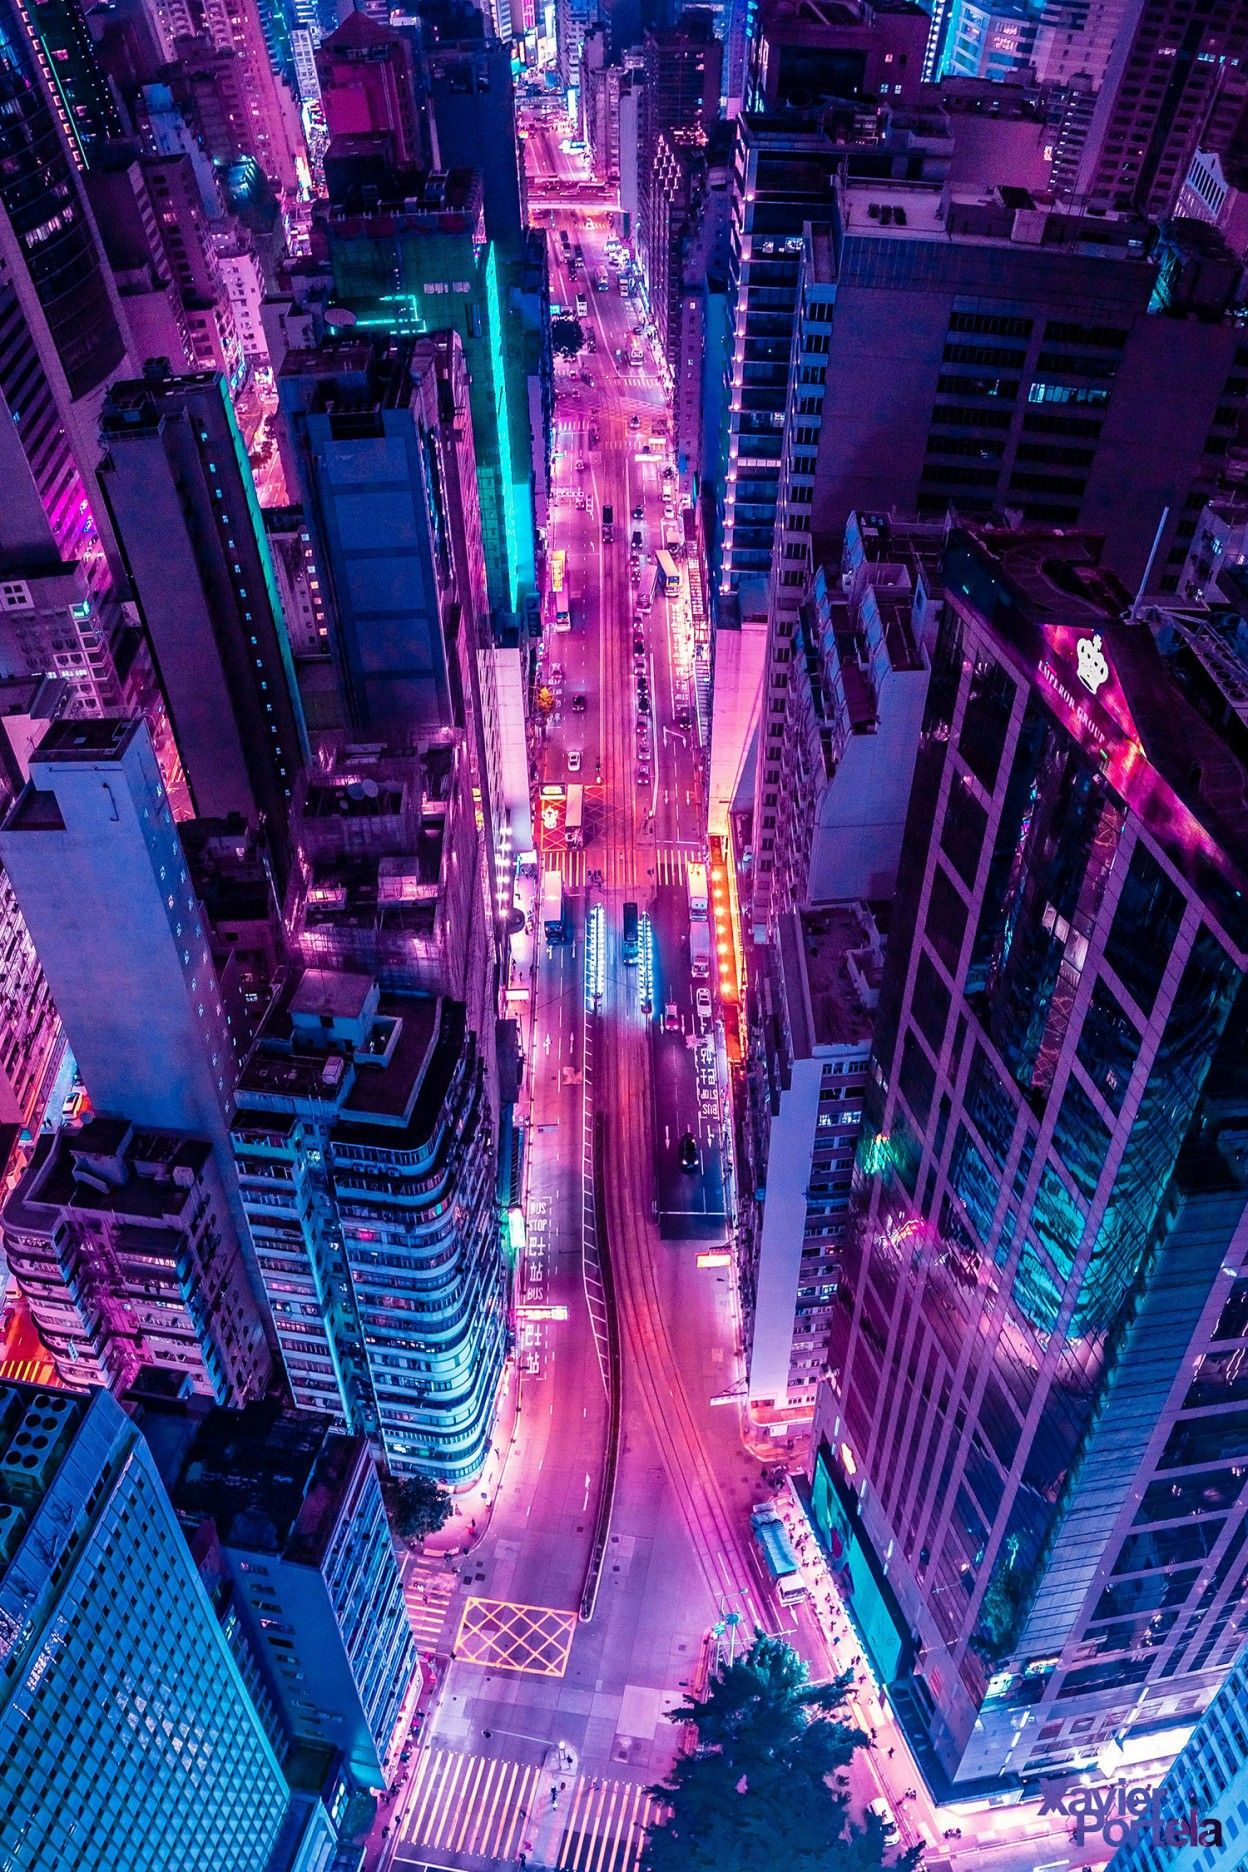 Aerial Explorations Of International Cityscapes Washed In A Neon Glow By Xavier Portela Neon Wallpaper Neon Aesthetic Aesthetic Wallpapers